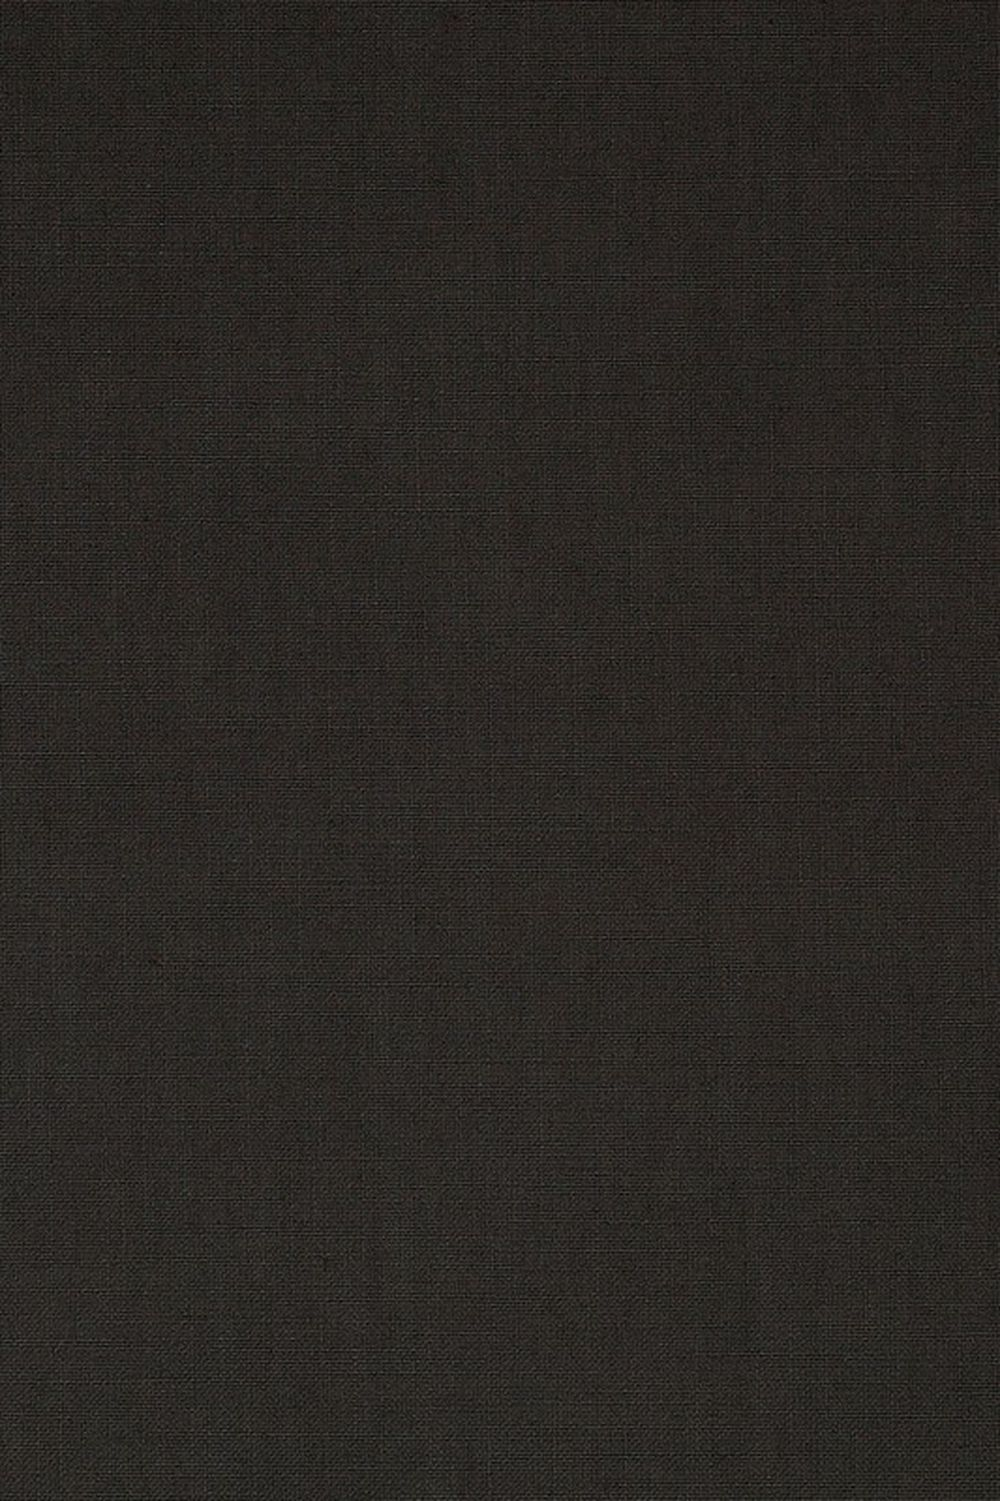 Photo of the fabric Lusk Gunmetal swatch by Pegasus. Use for Upholstery Heavy Duty, Accessory. Style of Plain, Texture